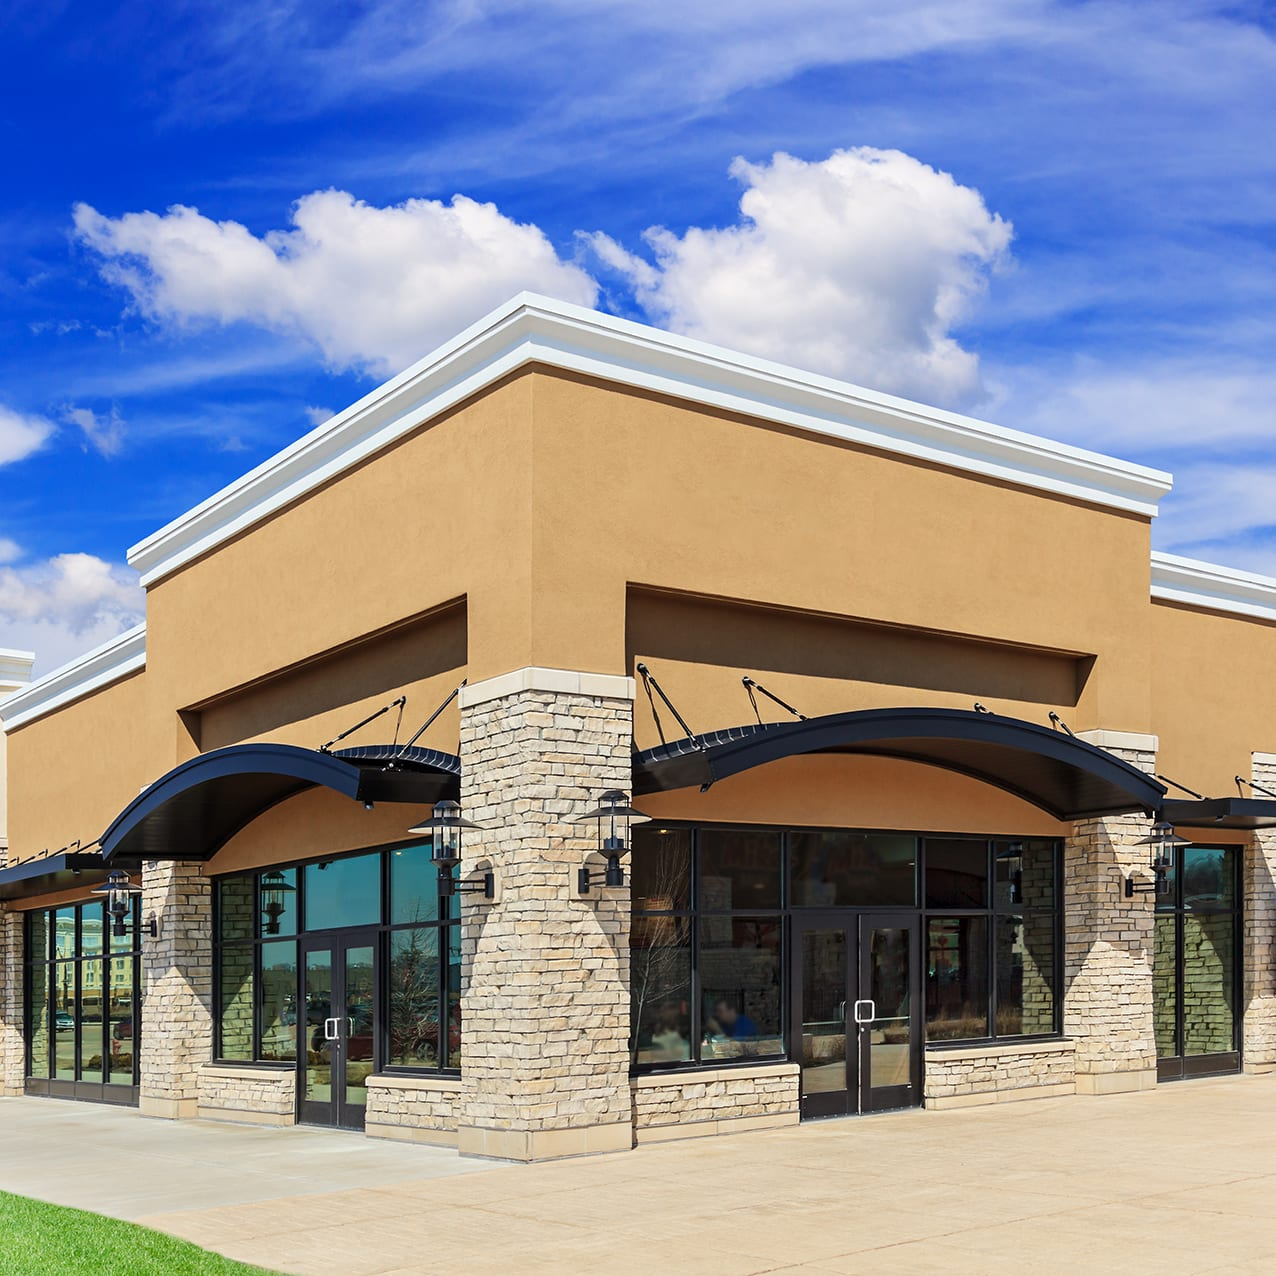 New commercial development featuring a street view of a Strip Mall with green grass, sidewalk and patio space. Blue sky and clouds are in the background.